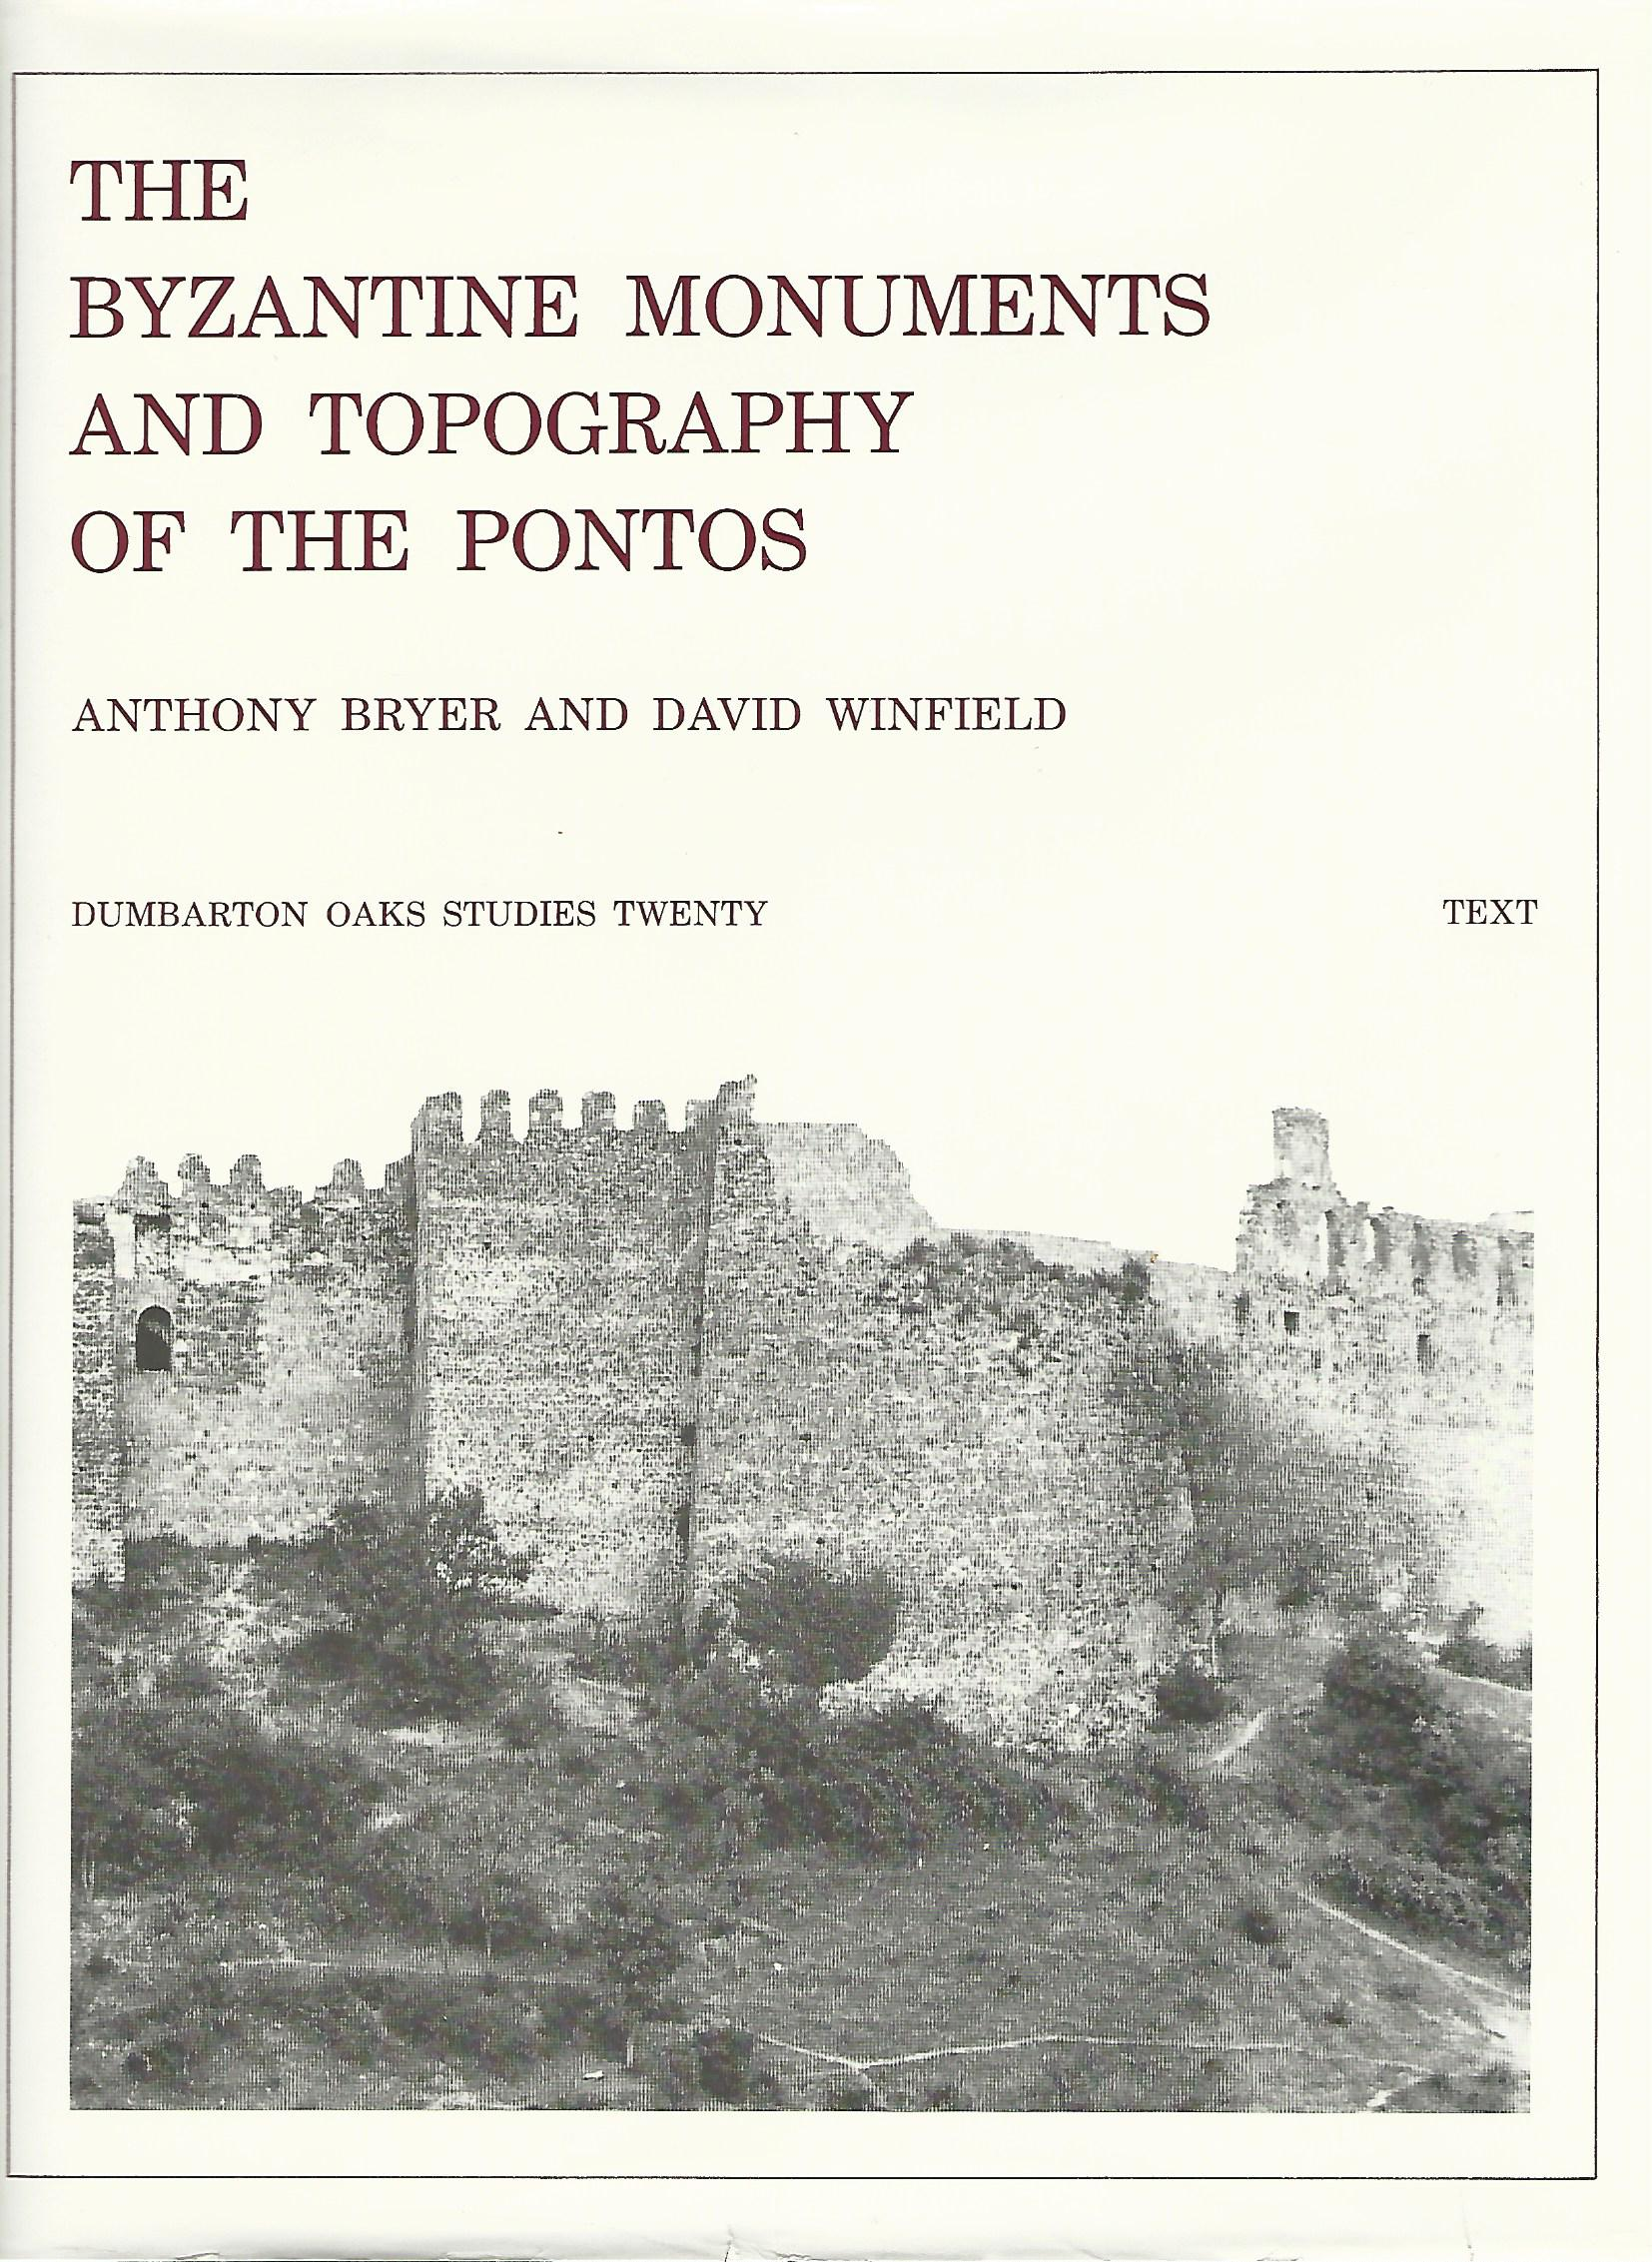 Image for Byzantine Monuments and Topography of the Pontos (Dumbarton Oaks Studies,20) Volume 1 Only.